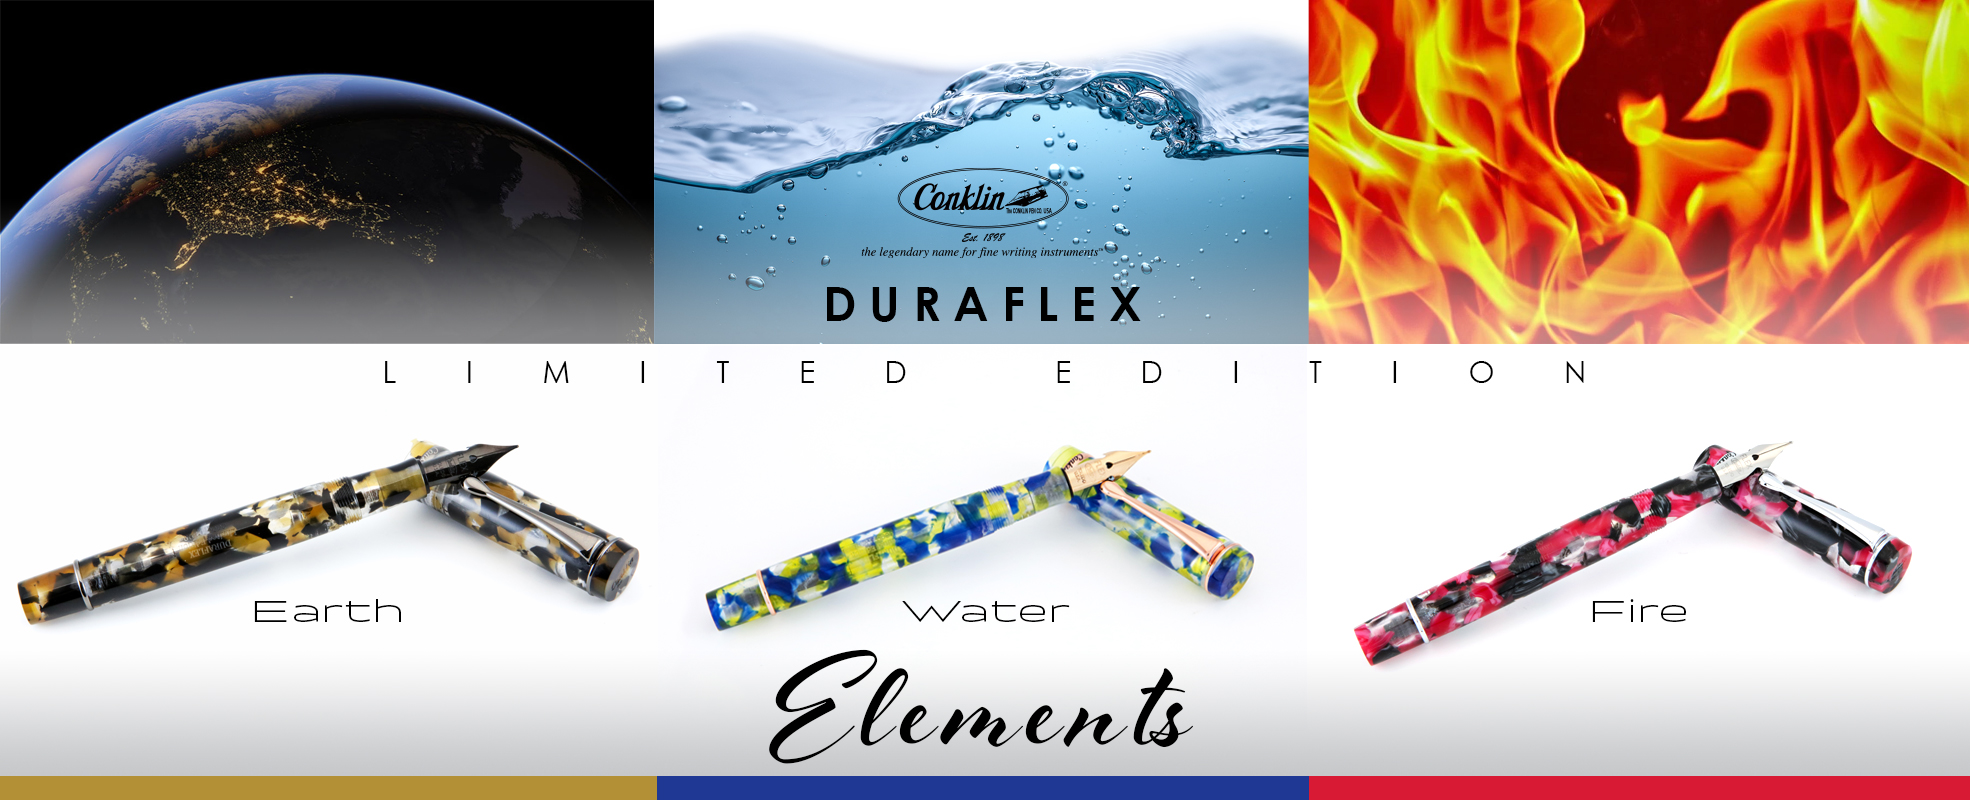 duraflex-le-elements-banner-new.jpg